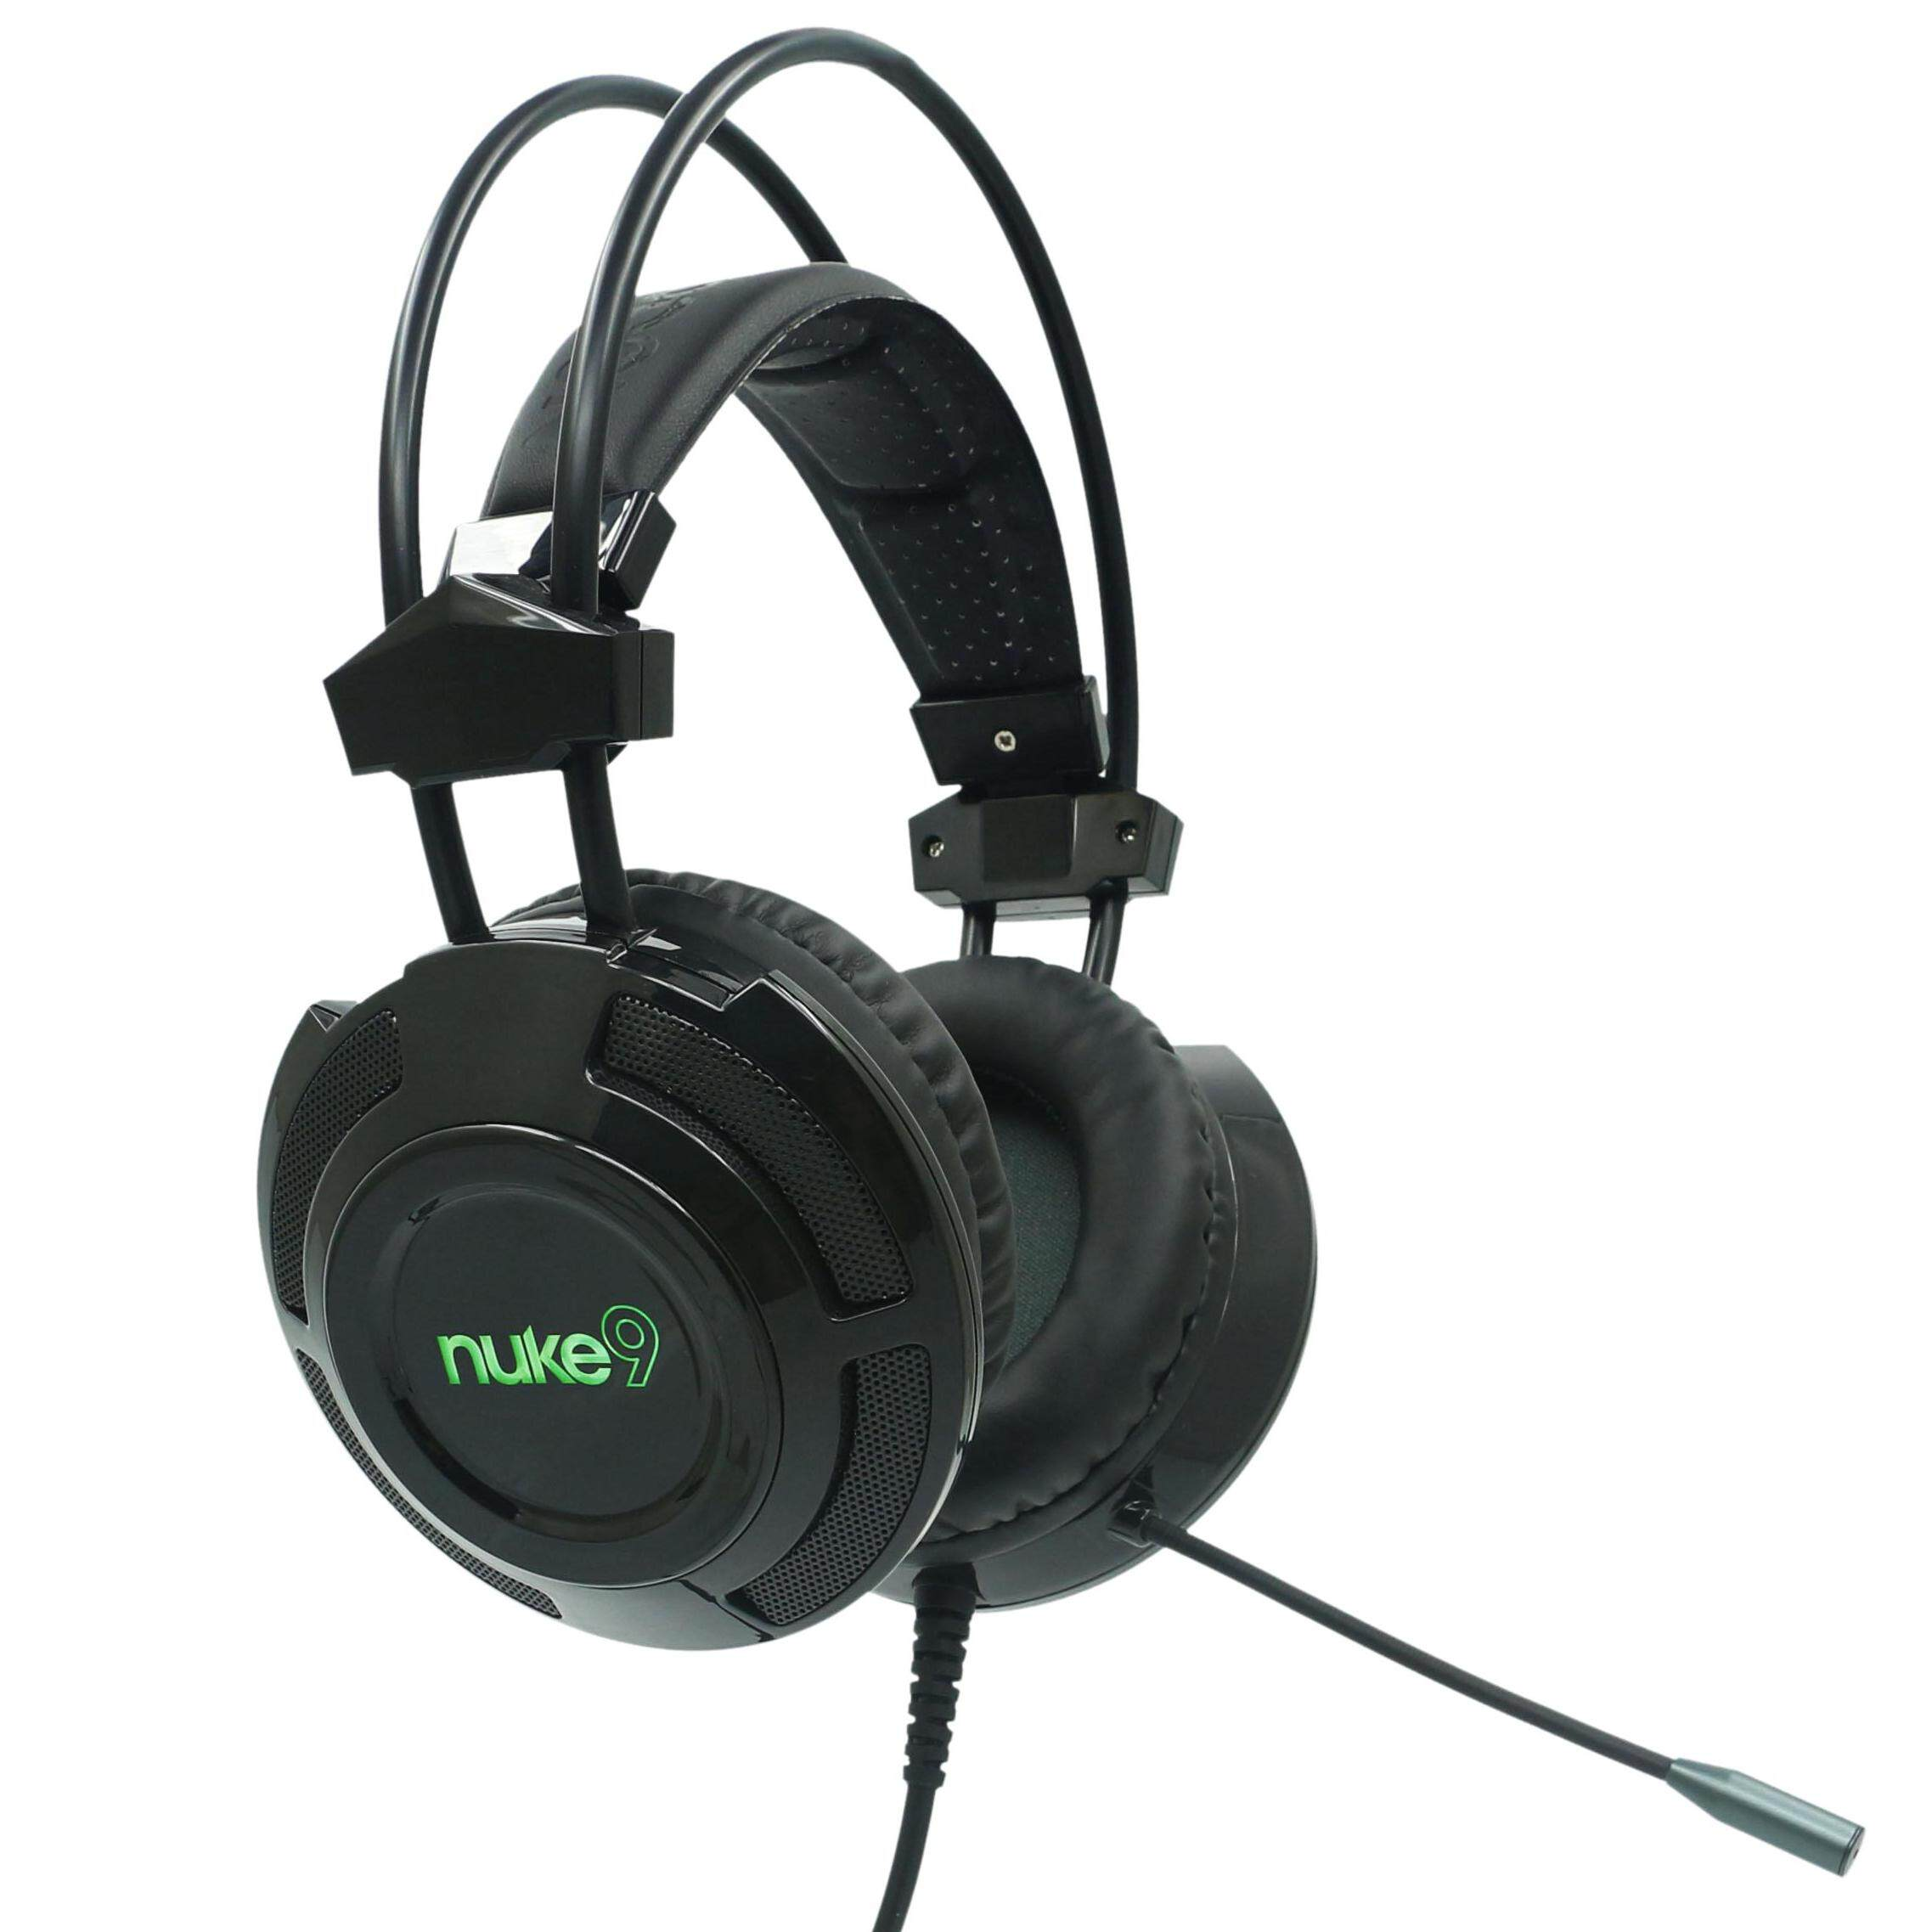 Armaggeddon Nuke 9 2018 Edition Over-ear Gaming 7.1 Surround Headset USB Audio Cable 7 Color LED Effect Headphone with Mic